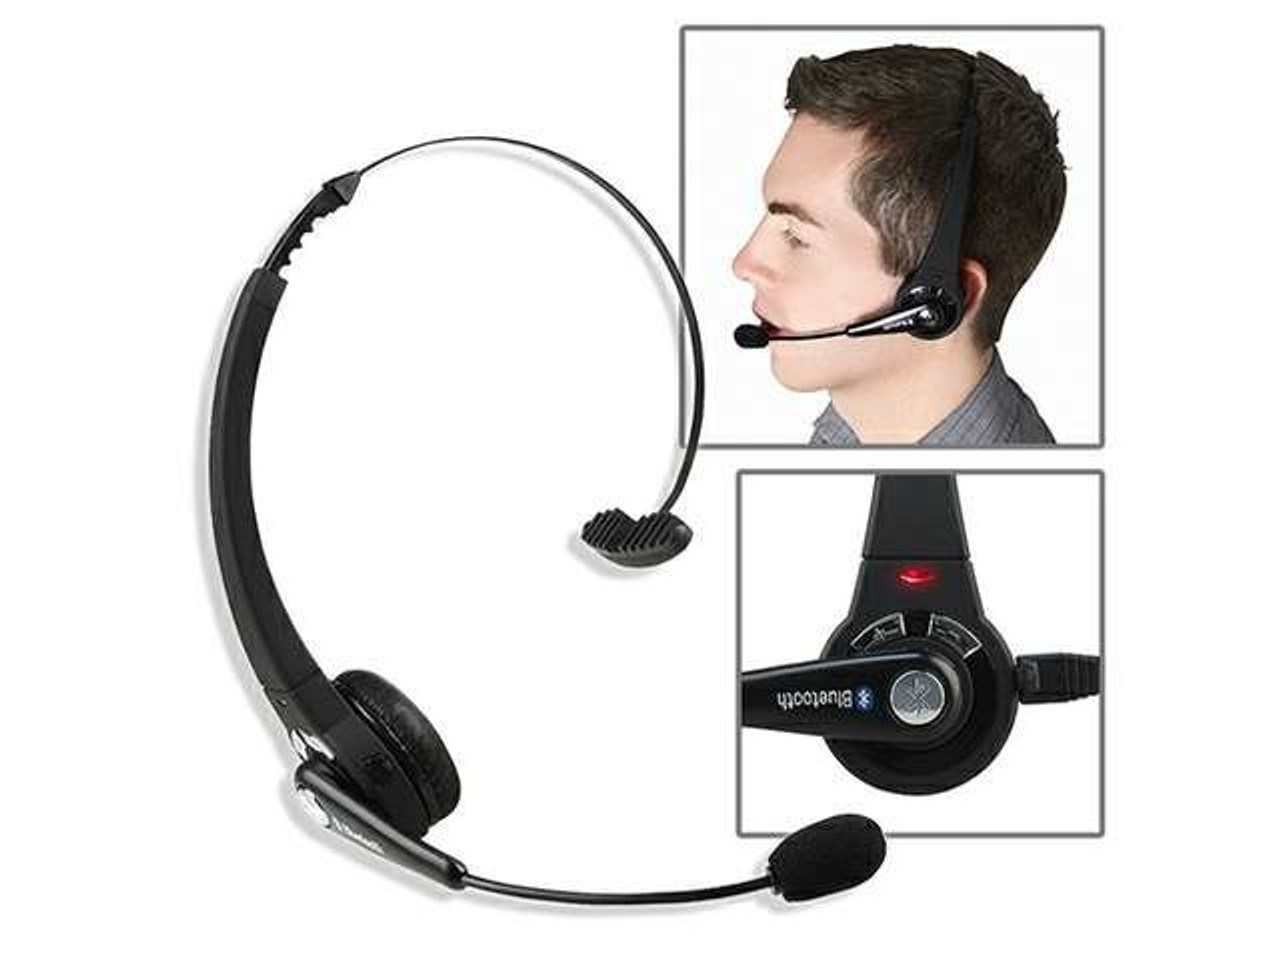 Mono Wireless Bluetooth Headset Headphones Multipoint Noise Canceling With Mic Handsfree For Pc Ps3 Gaming Mobile Phone Laptop Onshopdeals Com